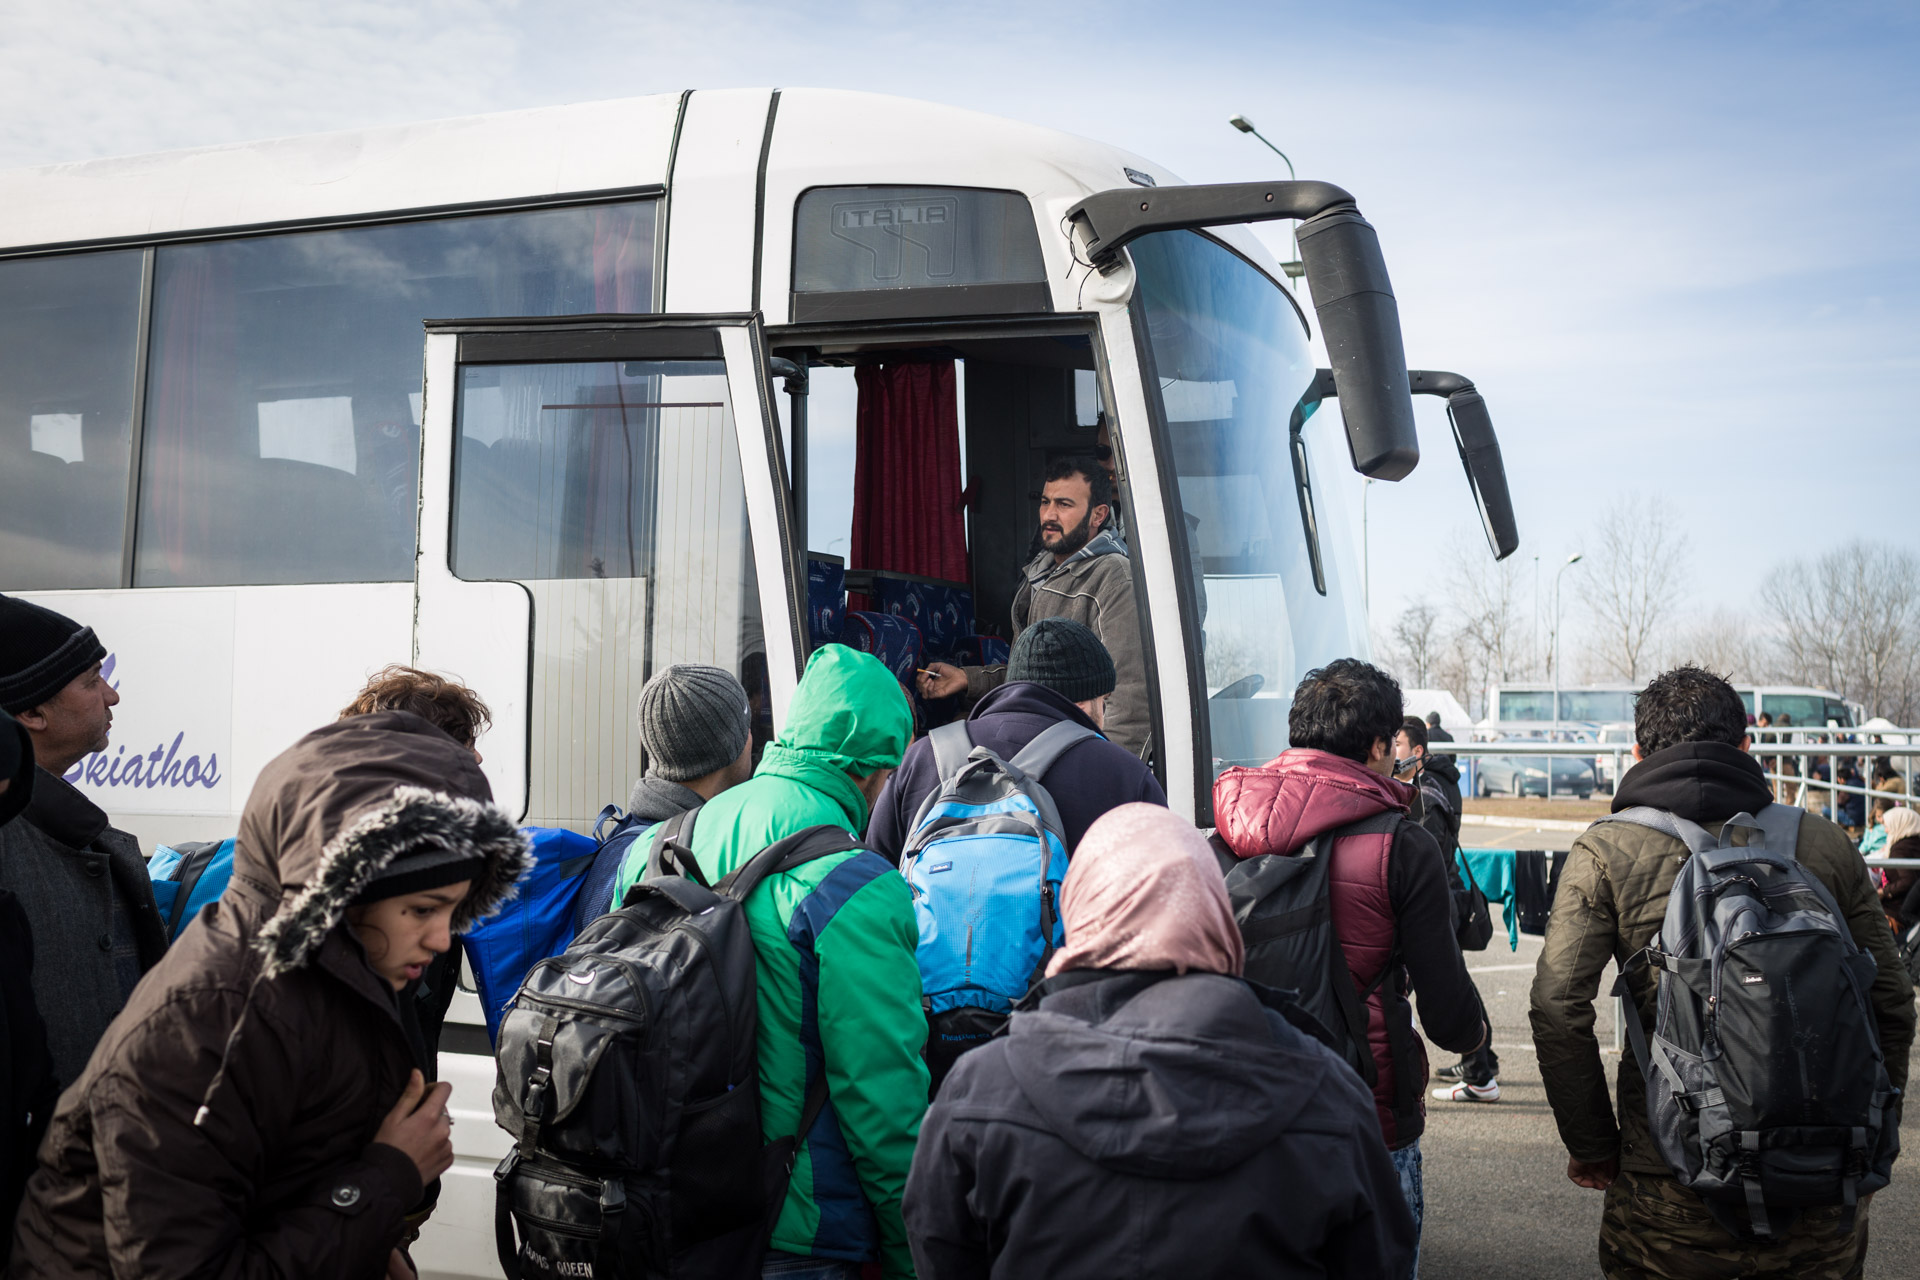 Basem, the father of the family, stands confused in the door of the bus, that was supposed to take the family from Athens to Idomeni. Instead, the bus stopped at a gas station 30 kilometres away. Greece ordered all buses with migrants to stop here.